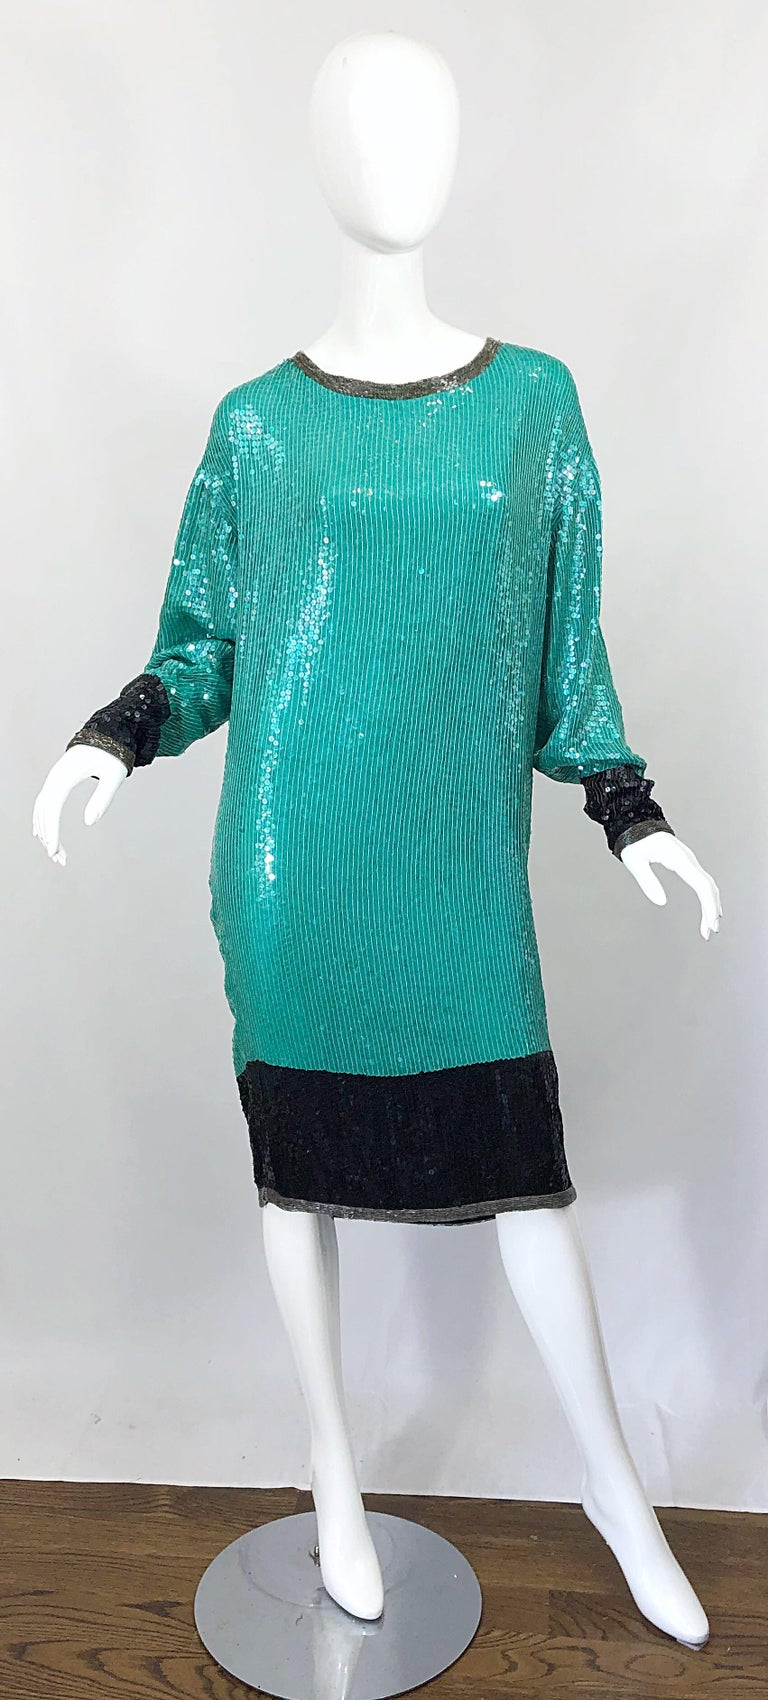 1970s HALSTON Teal Blue / Green + Black Sequined Beaded Dolman Sleeve Silk Dress For Sale 11